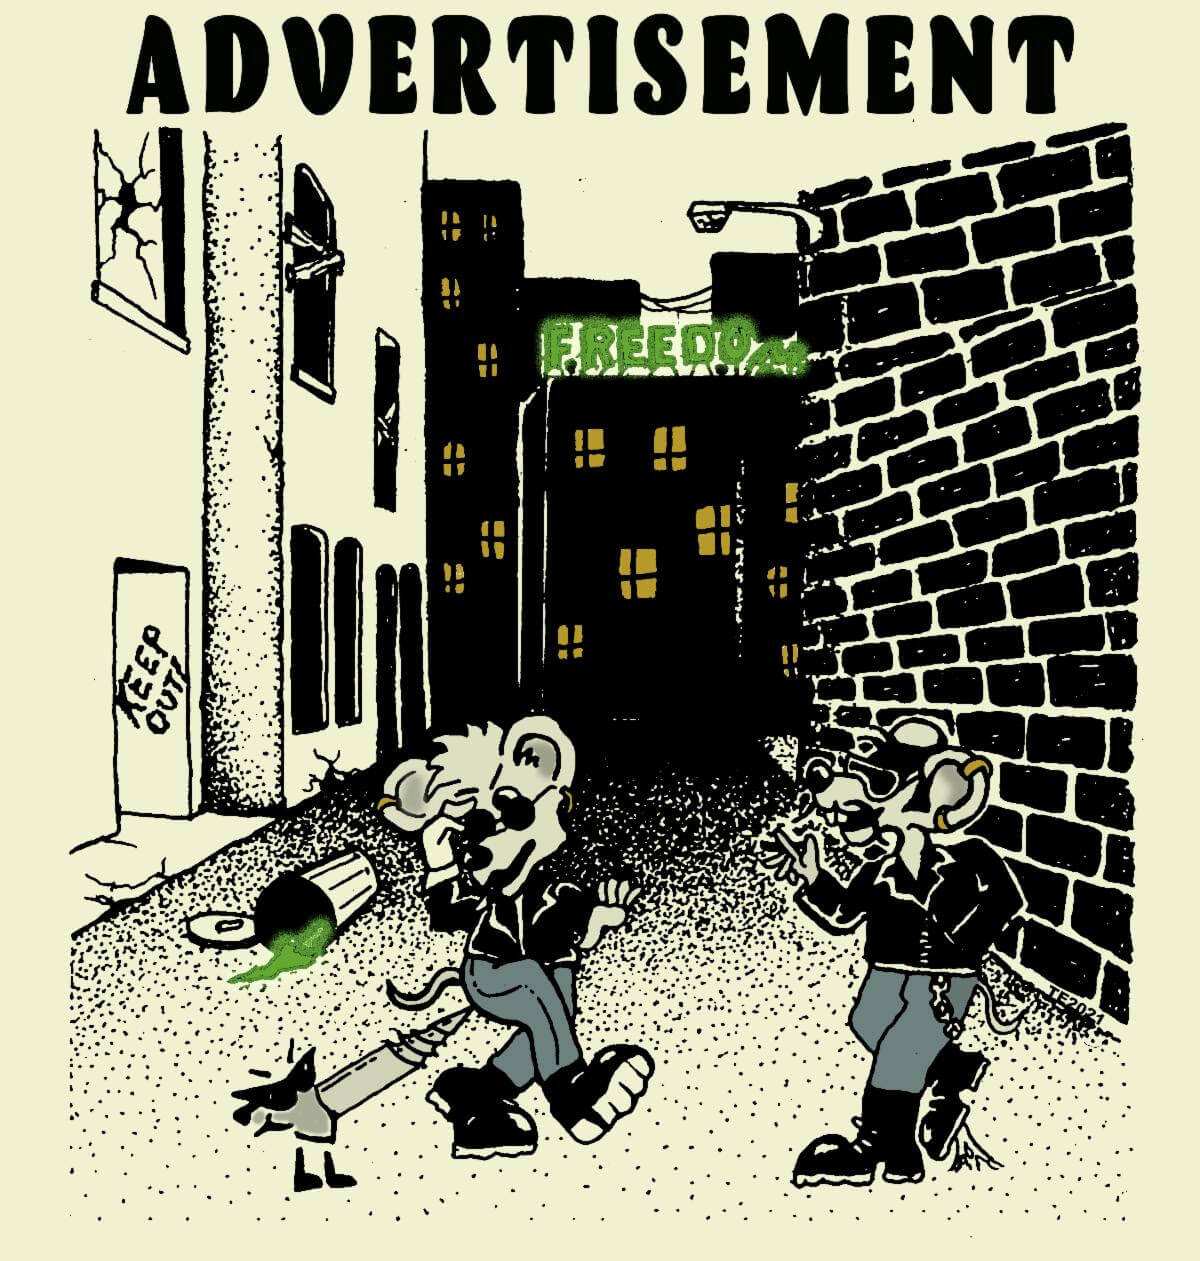 Freedom by Advertisement album review by Katie Tymochenko. The Gabe Wax produced is out today, and available to stream